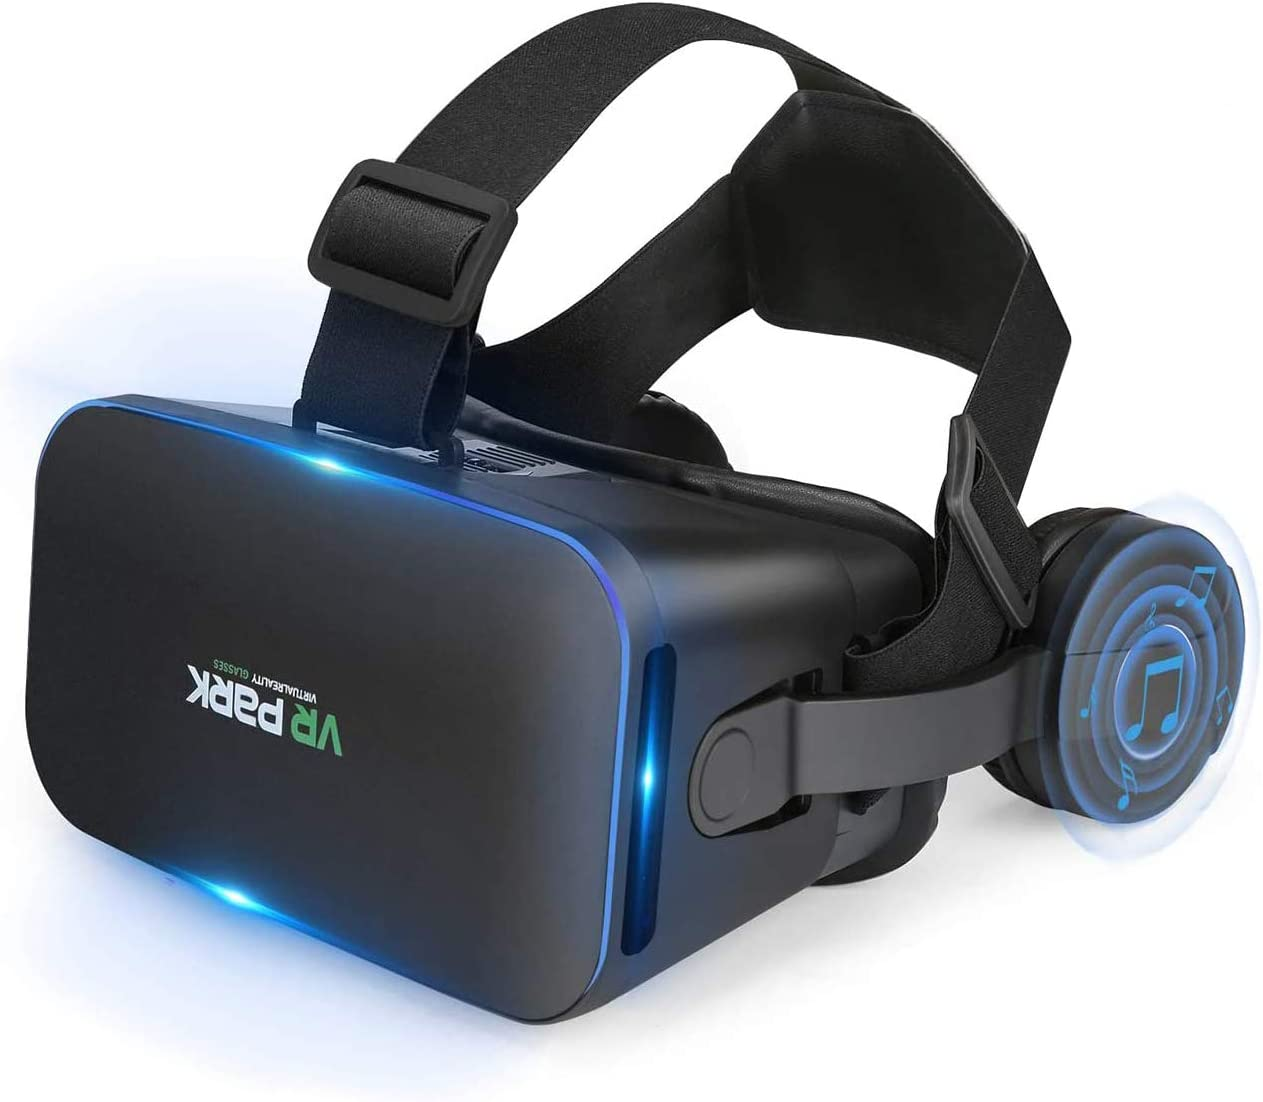 Virtual Reality Goggles for Kids & Adults - VR Headset Compatible with iPhone & Android (4.5 Inches to 6 Inches) - Adjustable Device Comfortable New 3D VR Glasses